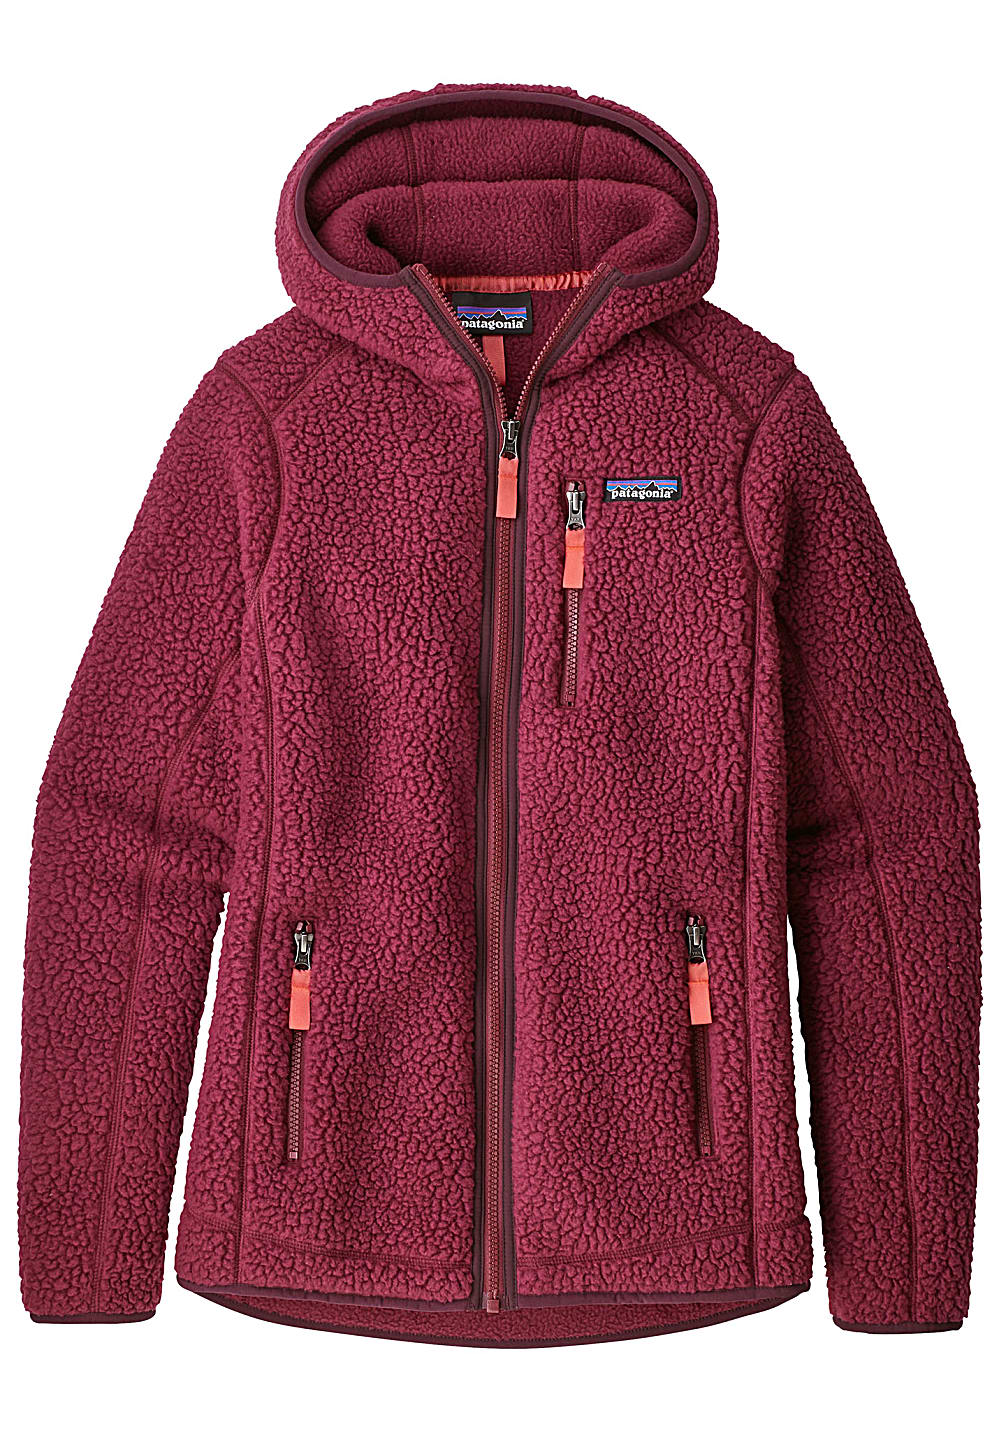 low priced 8a746 5c83f PATAGONIA Retro Pile - Fleece Jacket for Women - Red